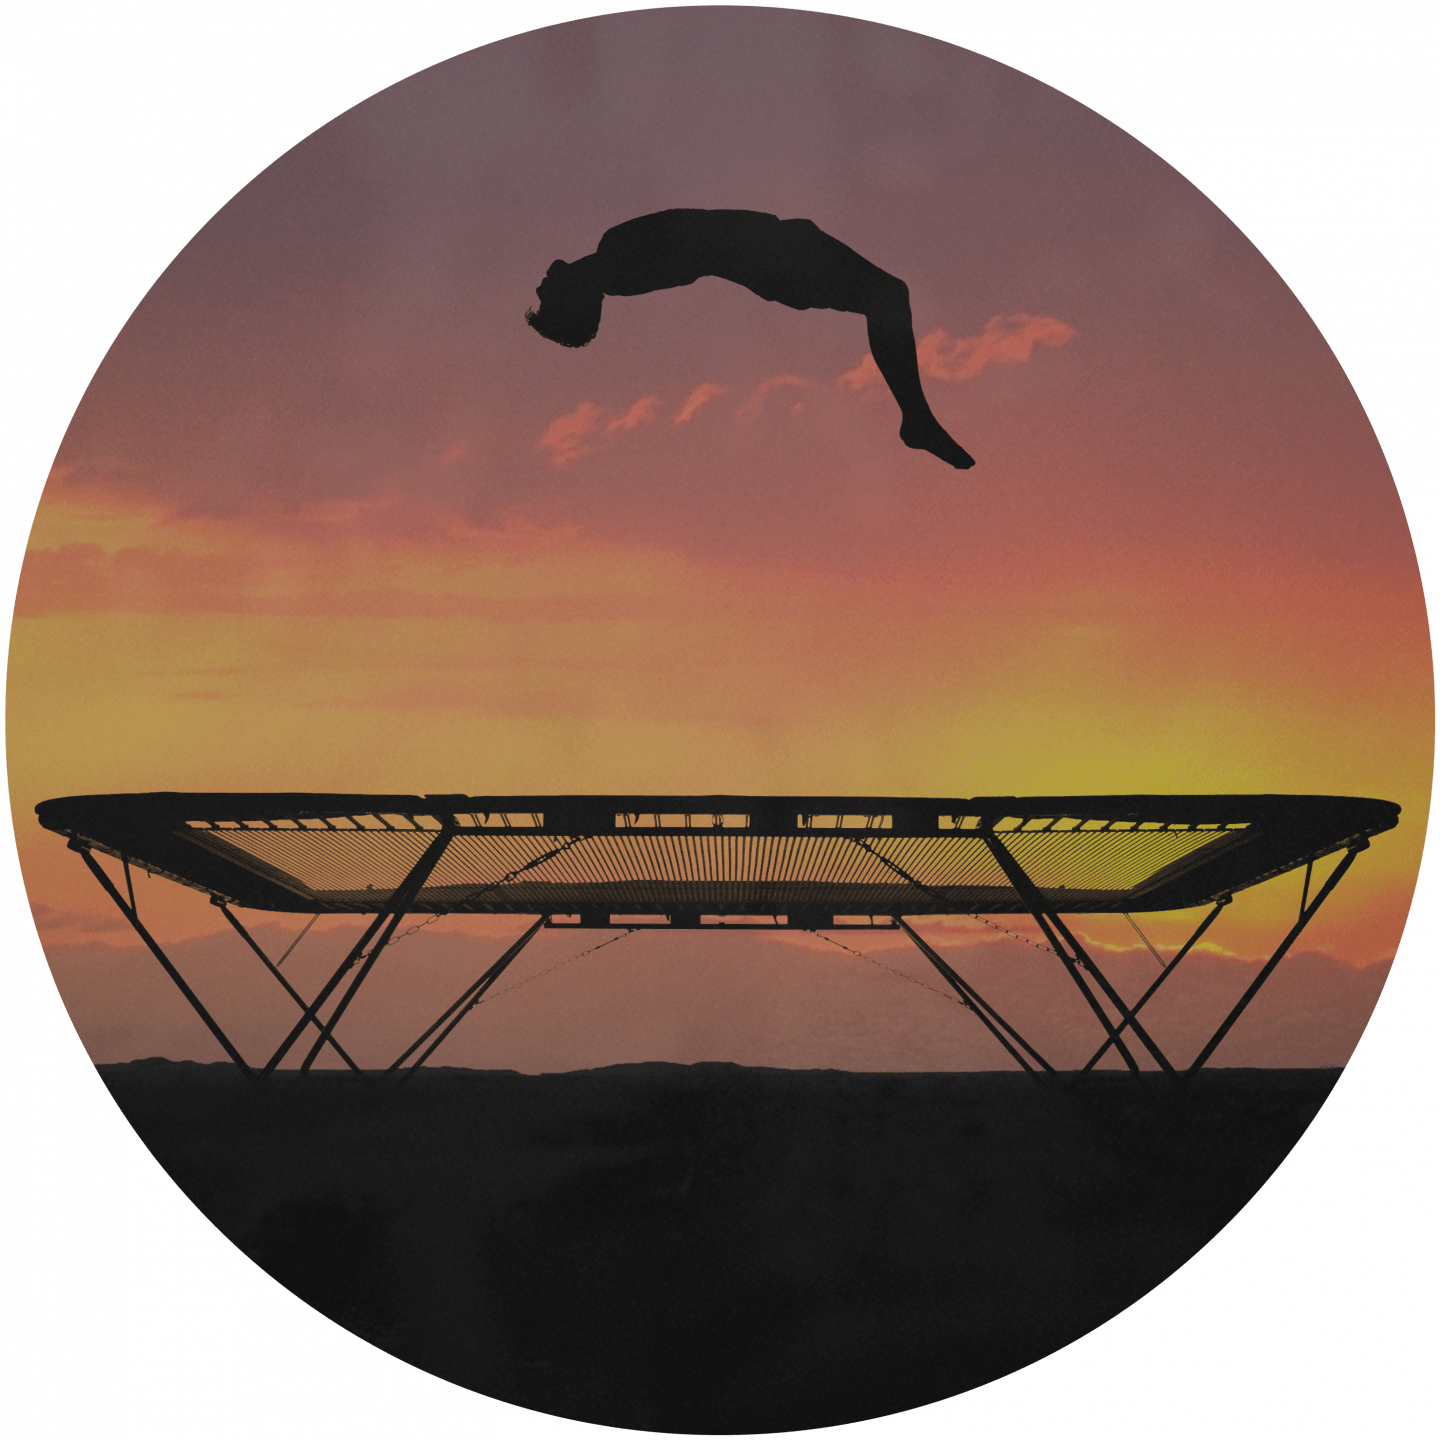 A man jumping on an olympic trampolin in front of a sunset scenery. team building, team event, business, adidas, GamePlan A, jump, sunset, trampolin, fun